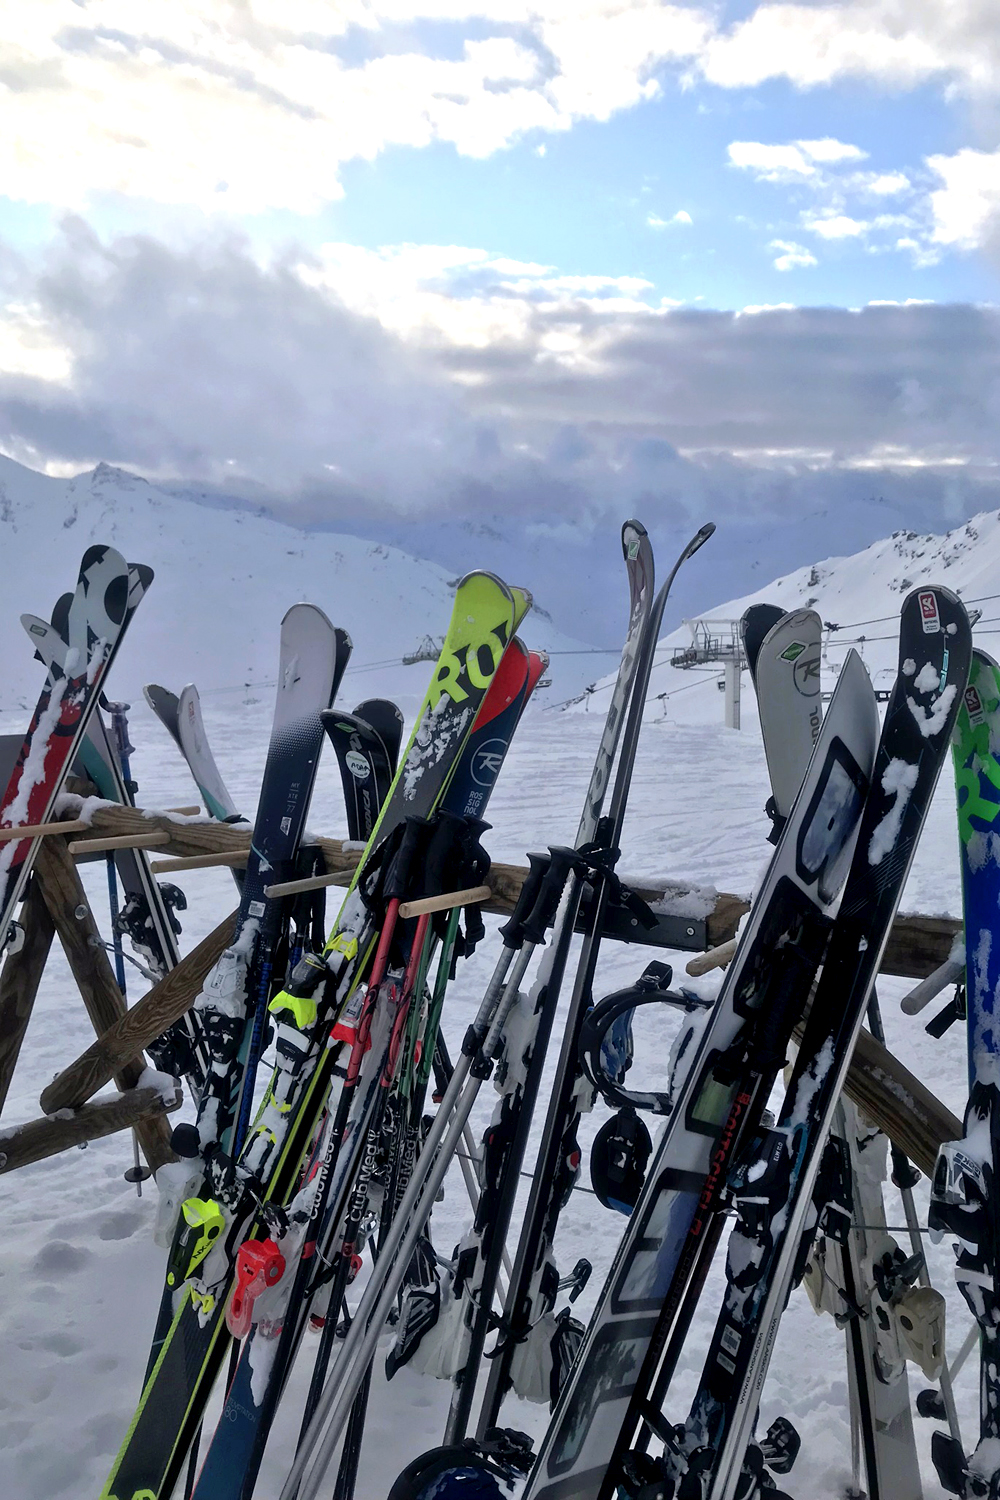 Skis at lunch in Val Thorens, France - travel & lifestyle blog